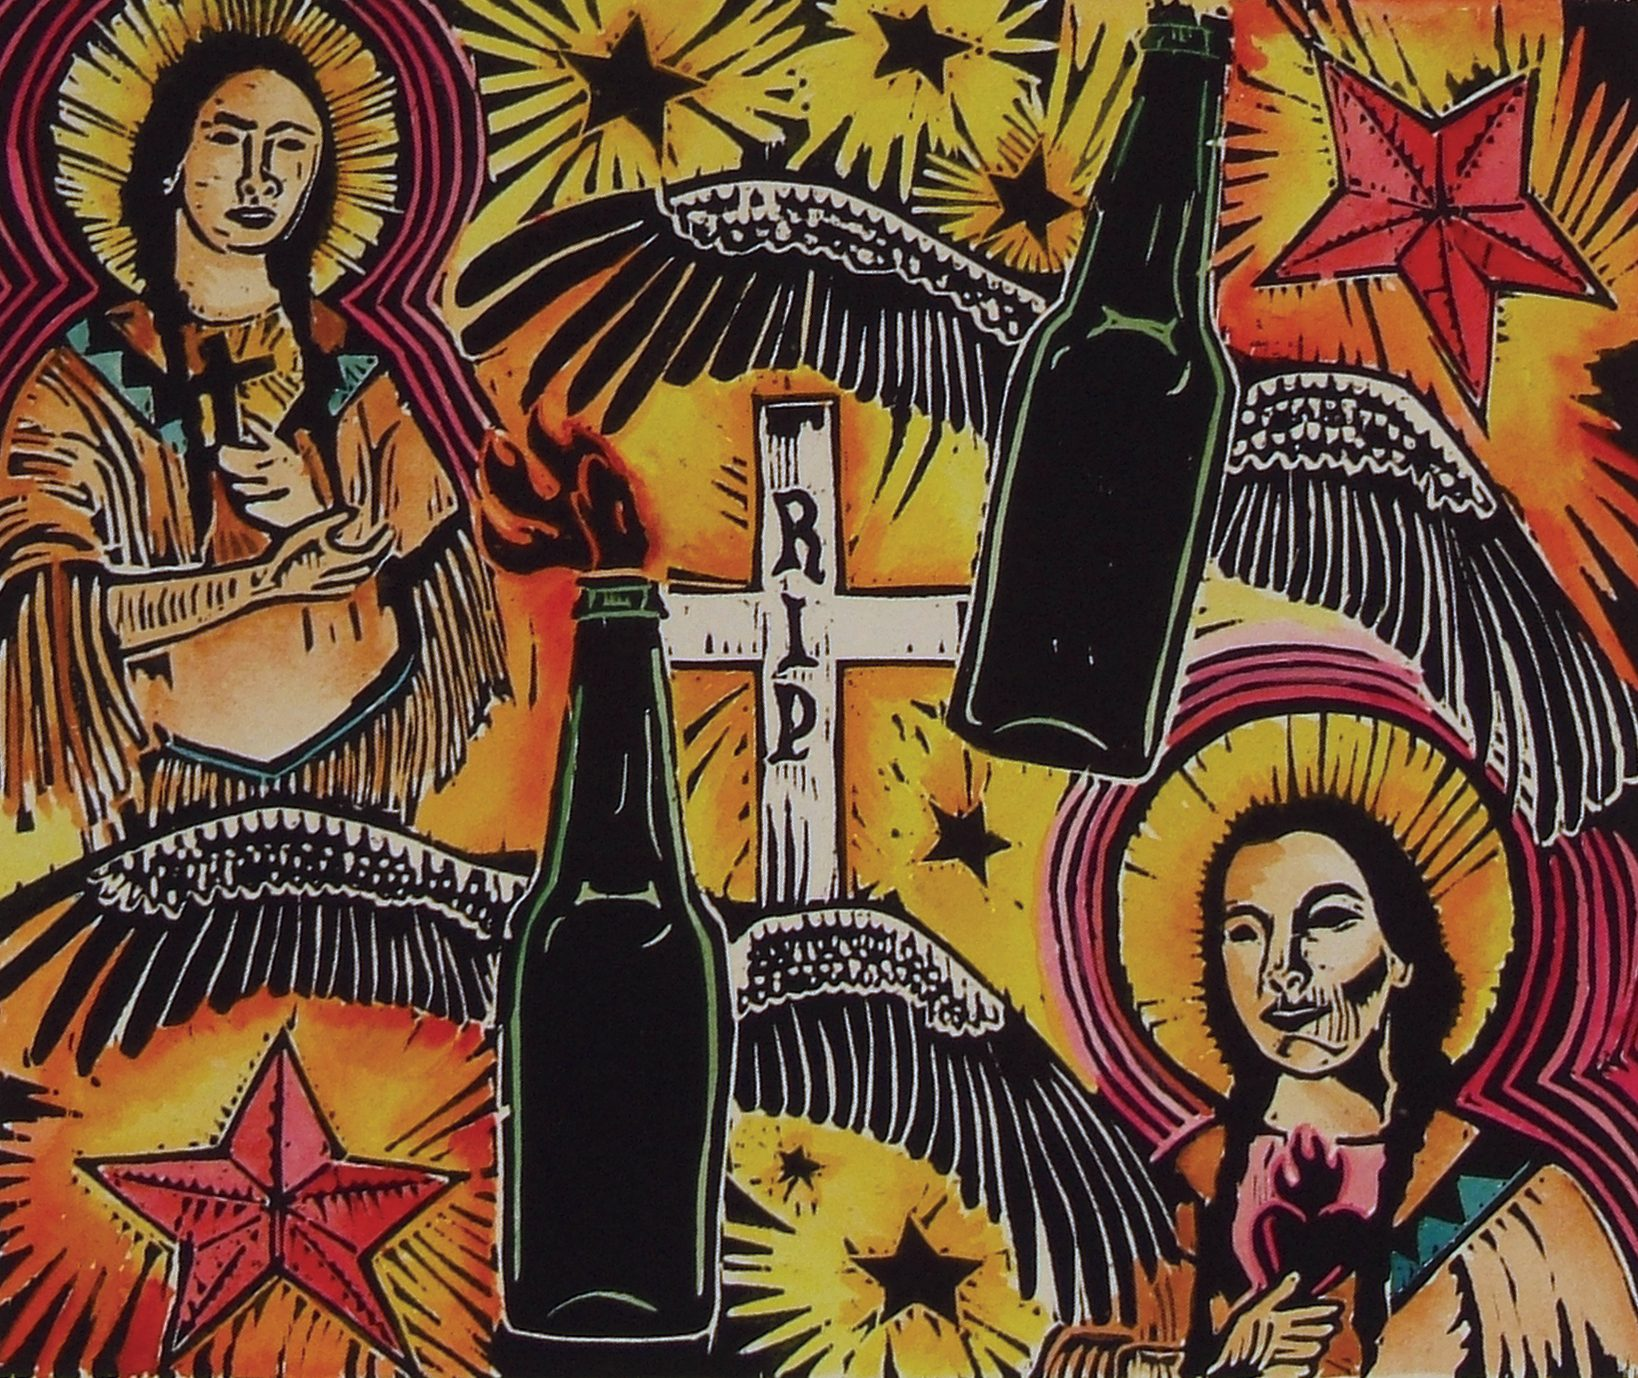 red stars, crosses, bottles, wings, faces in print collage